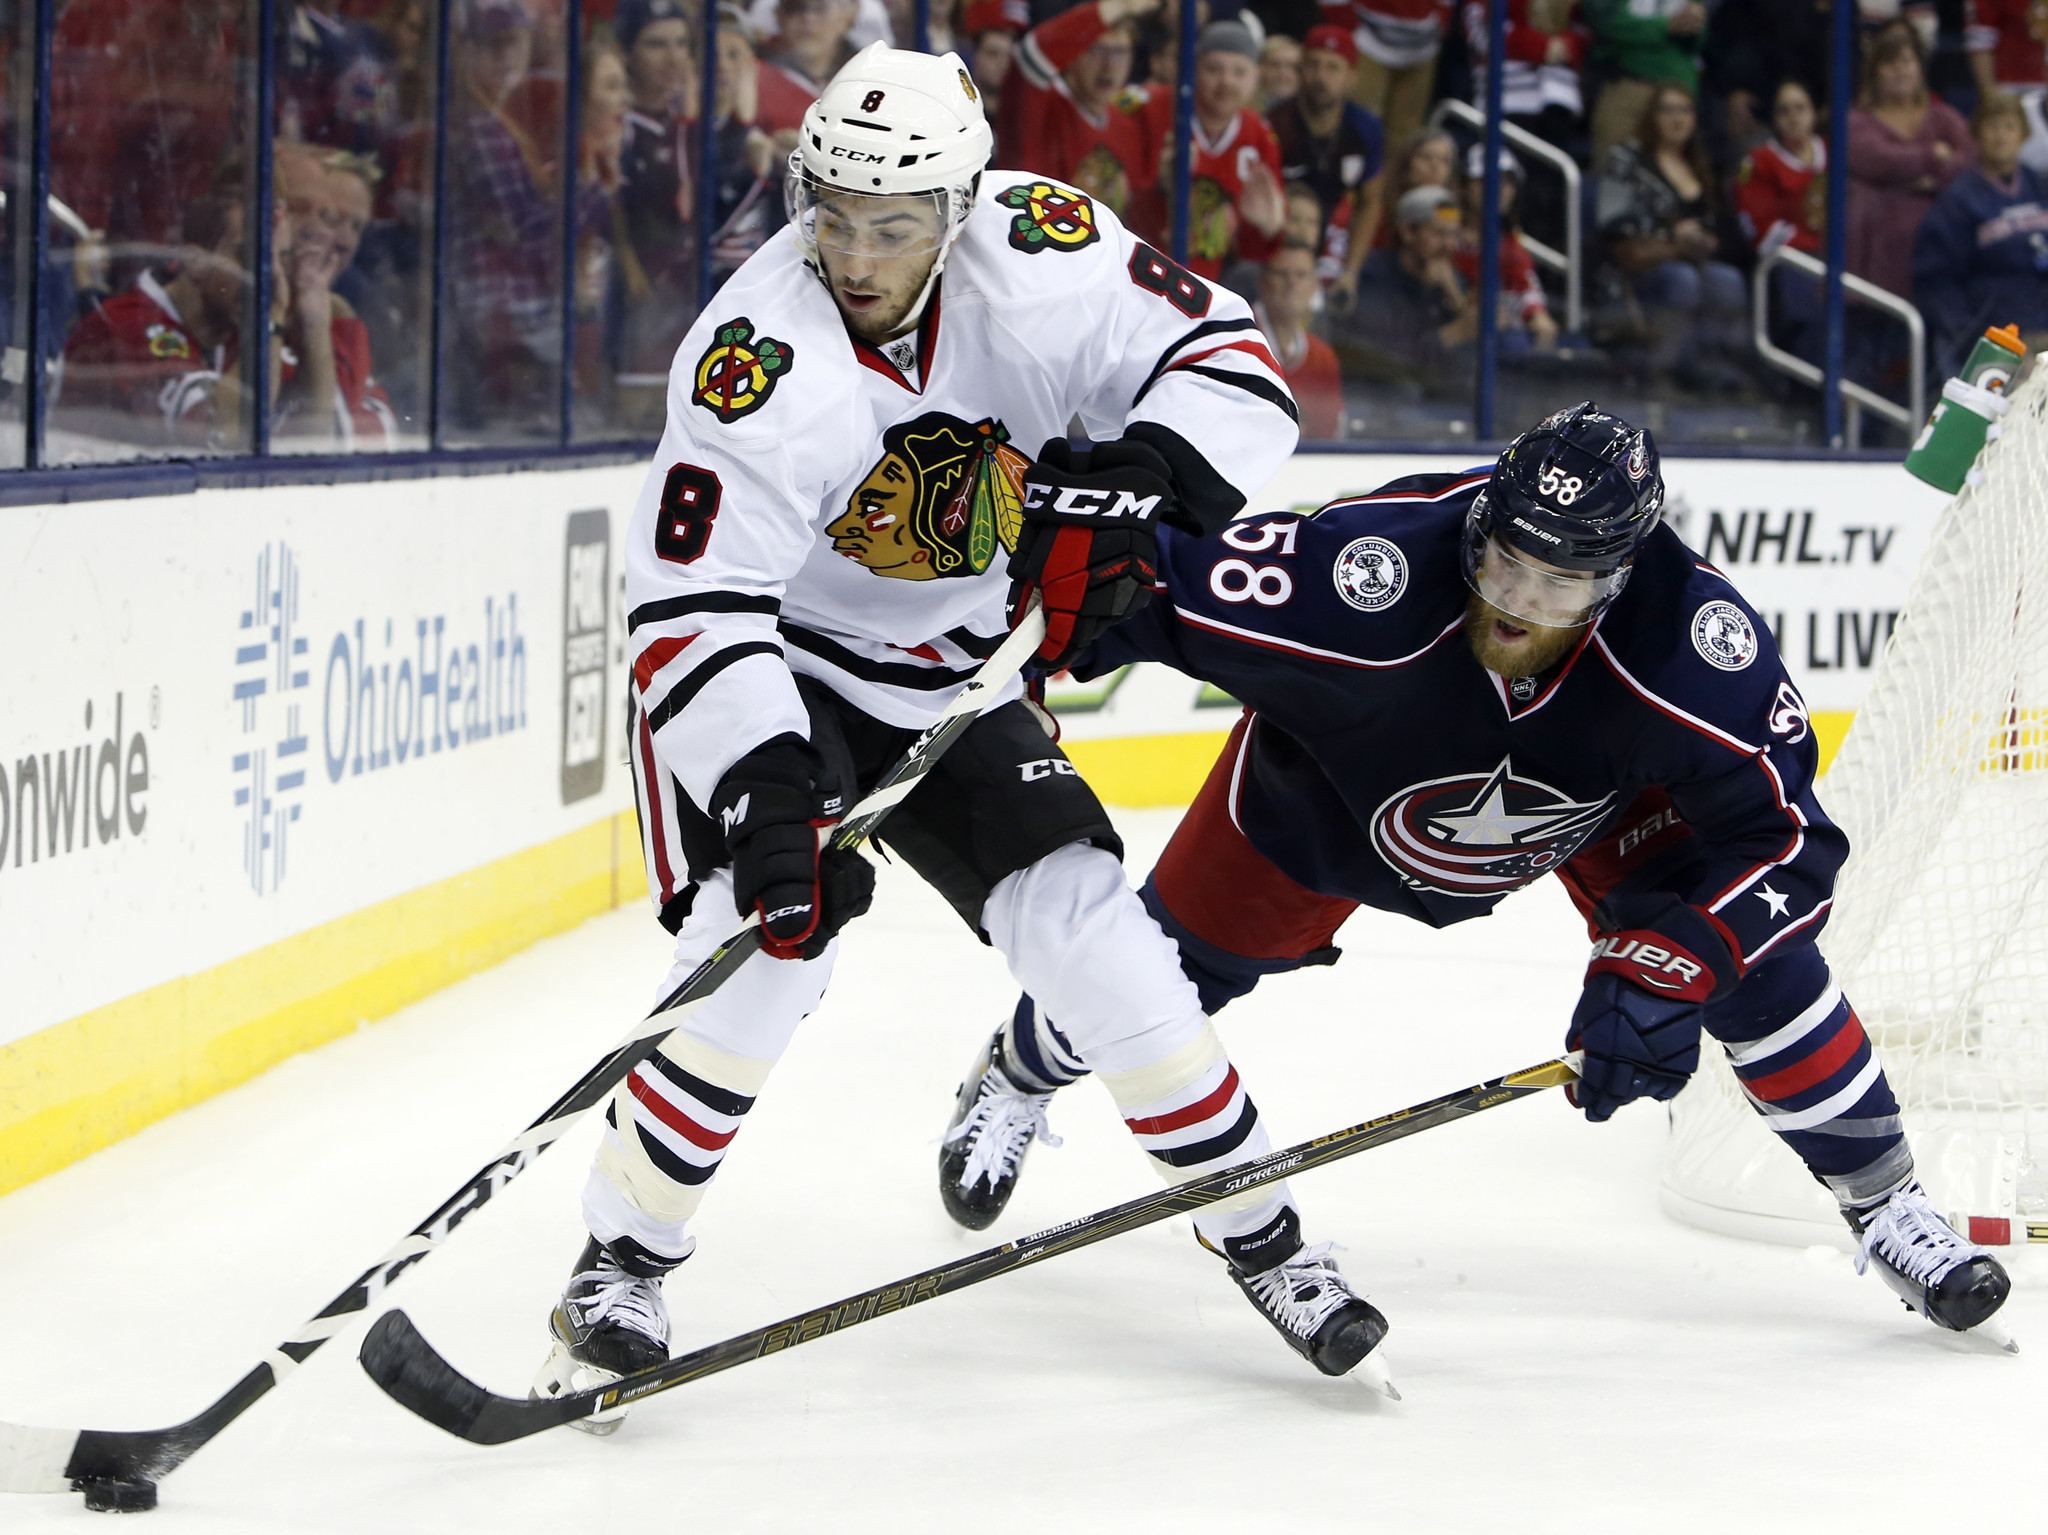 Observations from the Blackhawks' 3-2 loss to the Blue Jackets ...